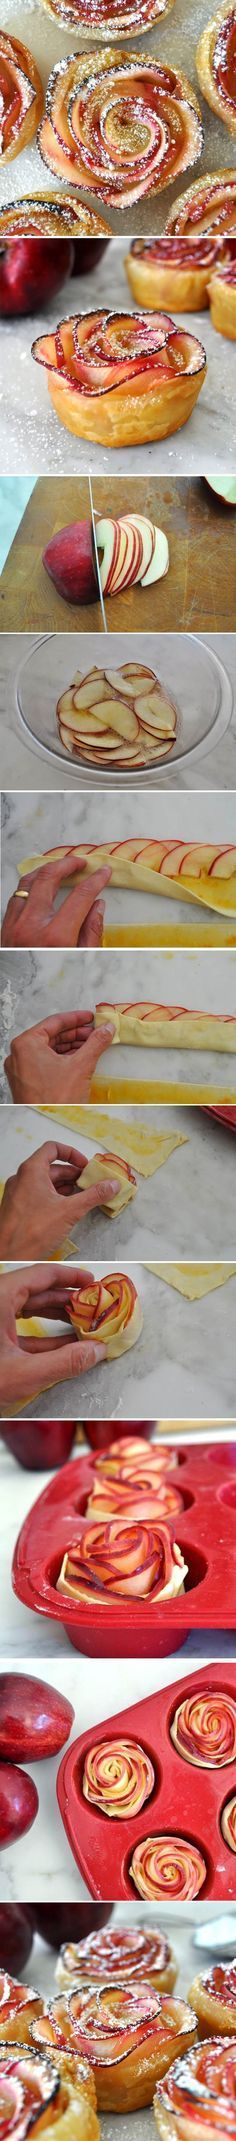 How to Make Apple Roses Beautiful and Delicious By Manuela